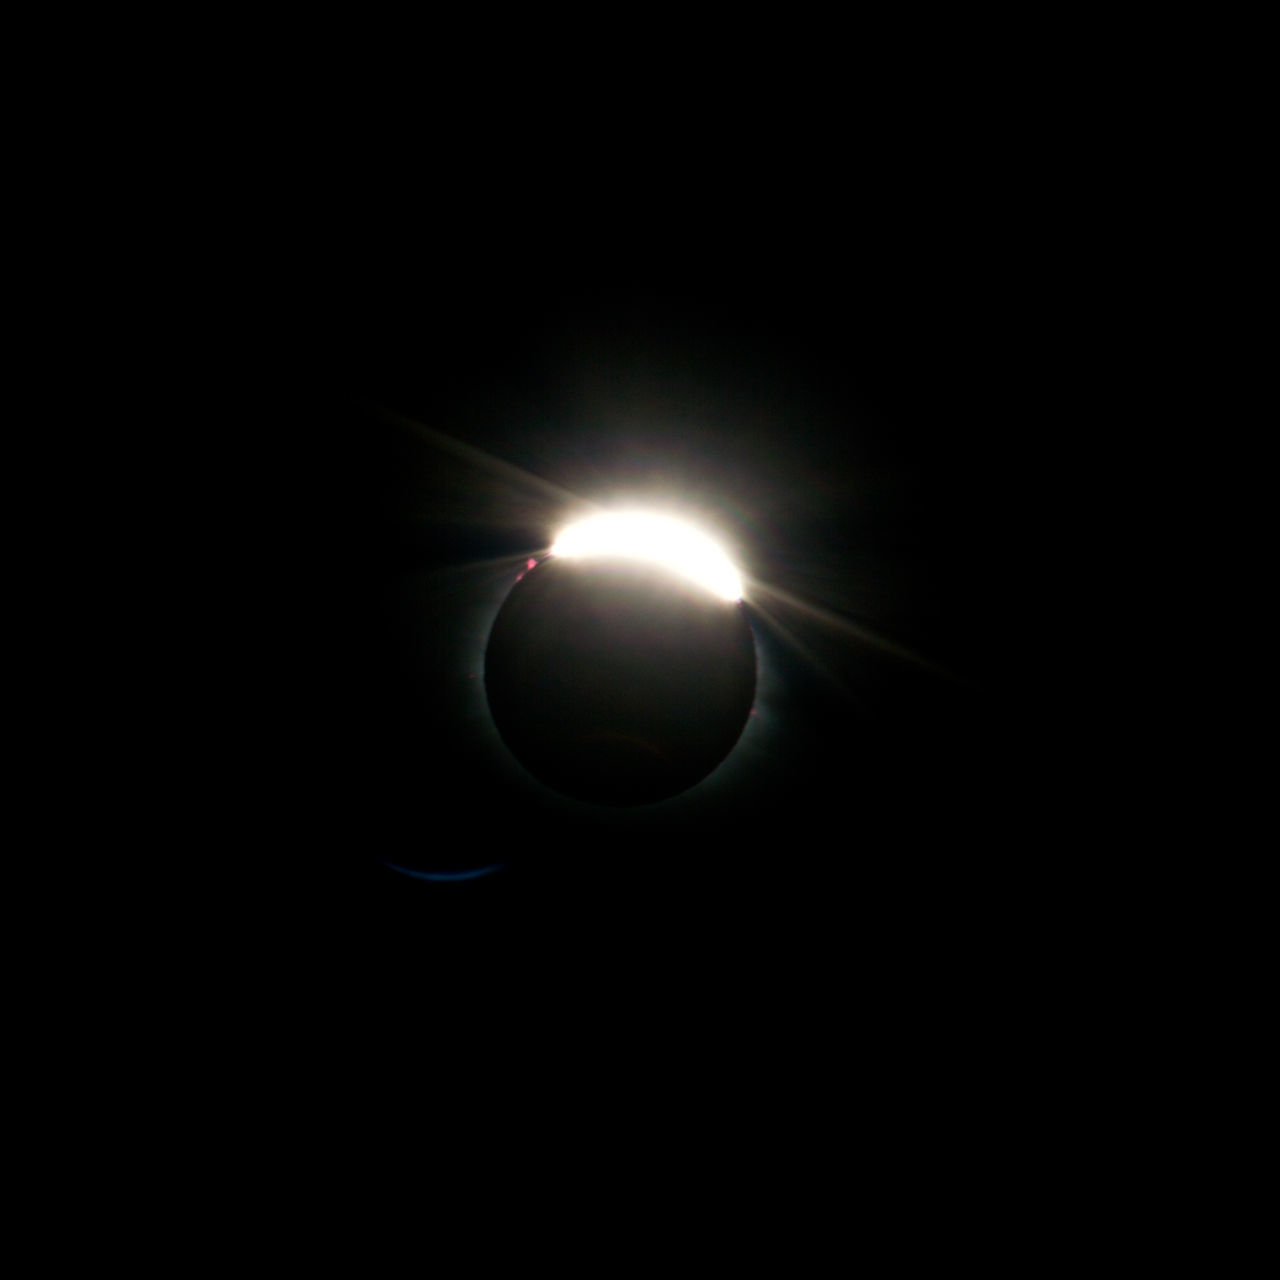 97% Arc Darkness Eclipse Eclipse2015 Good Morning Iceland Light In The Darkness Looking Up Moon Morning Natural Phenomenon Roadtrip With The Cousins Solar Eclipse Solar Eclipse 2015 Sun Sun Eclipse Weird Light